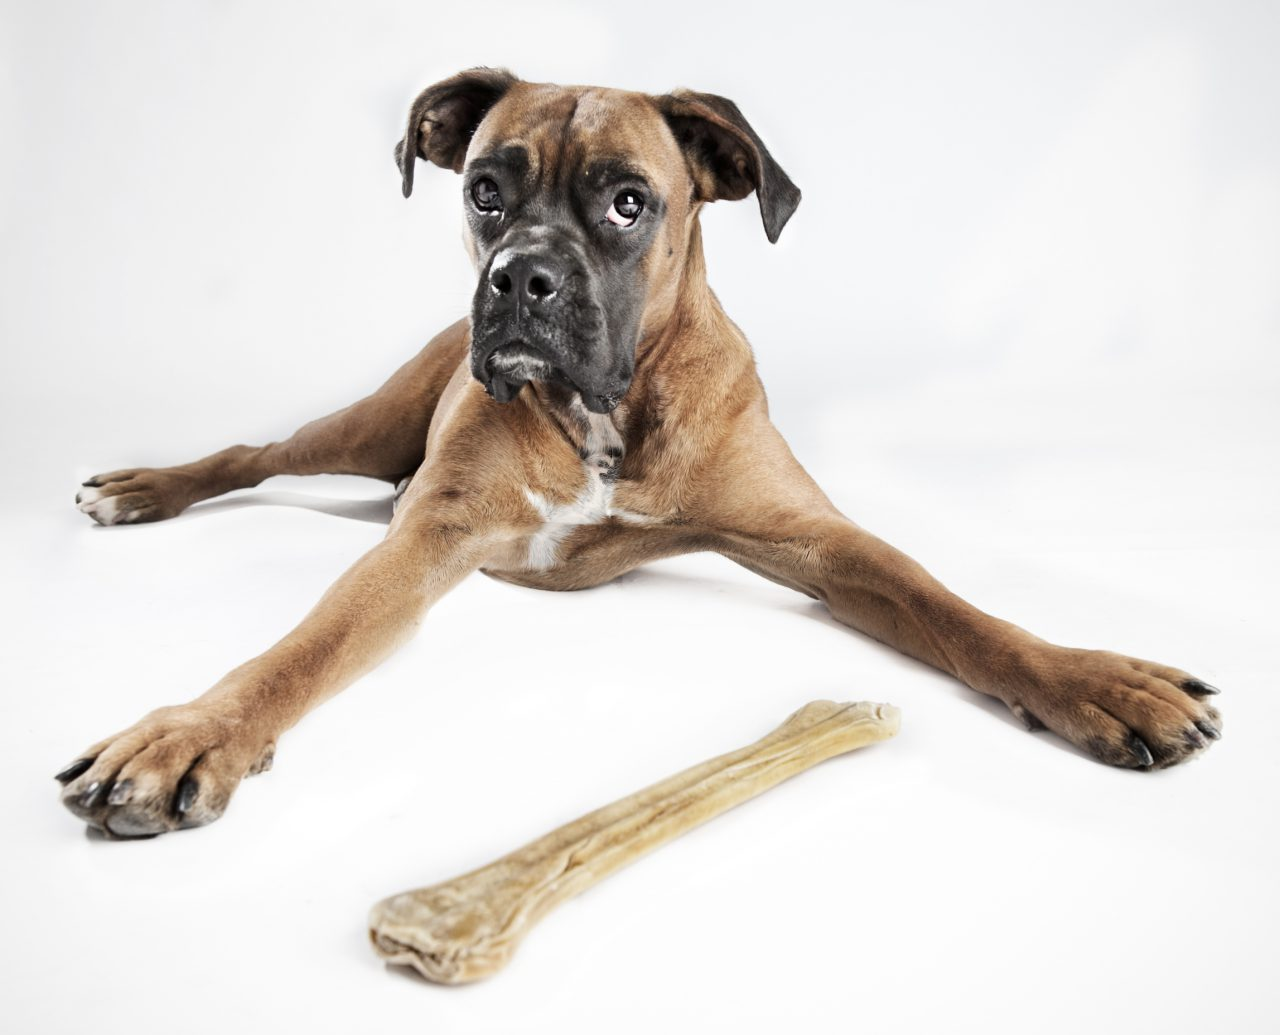 Find Another Dog to Toss That Bone To